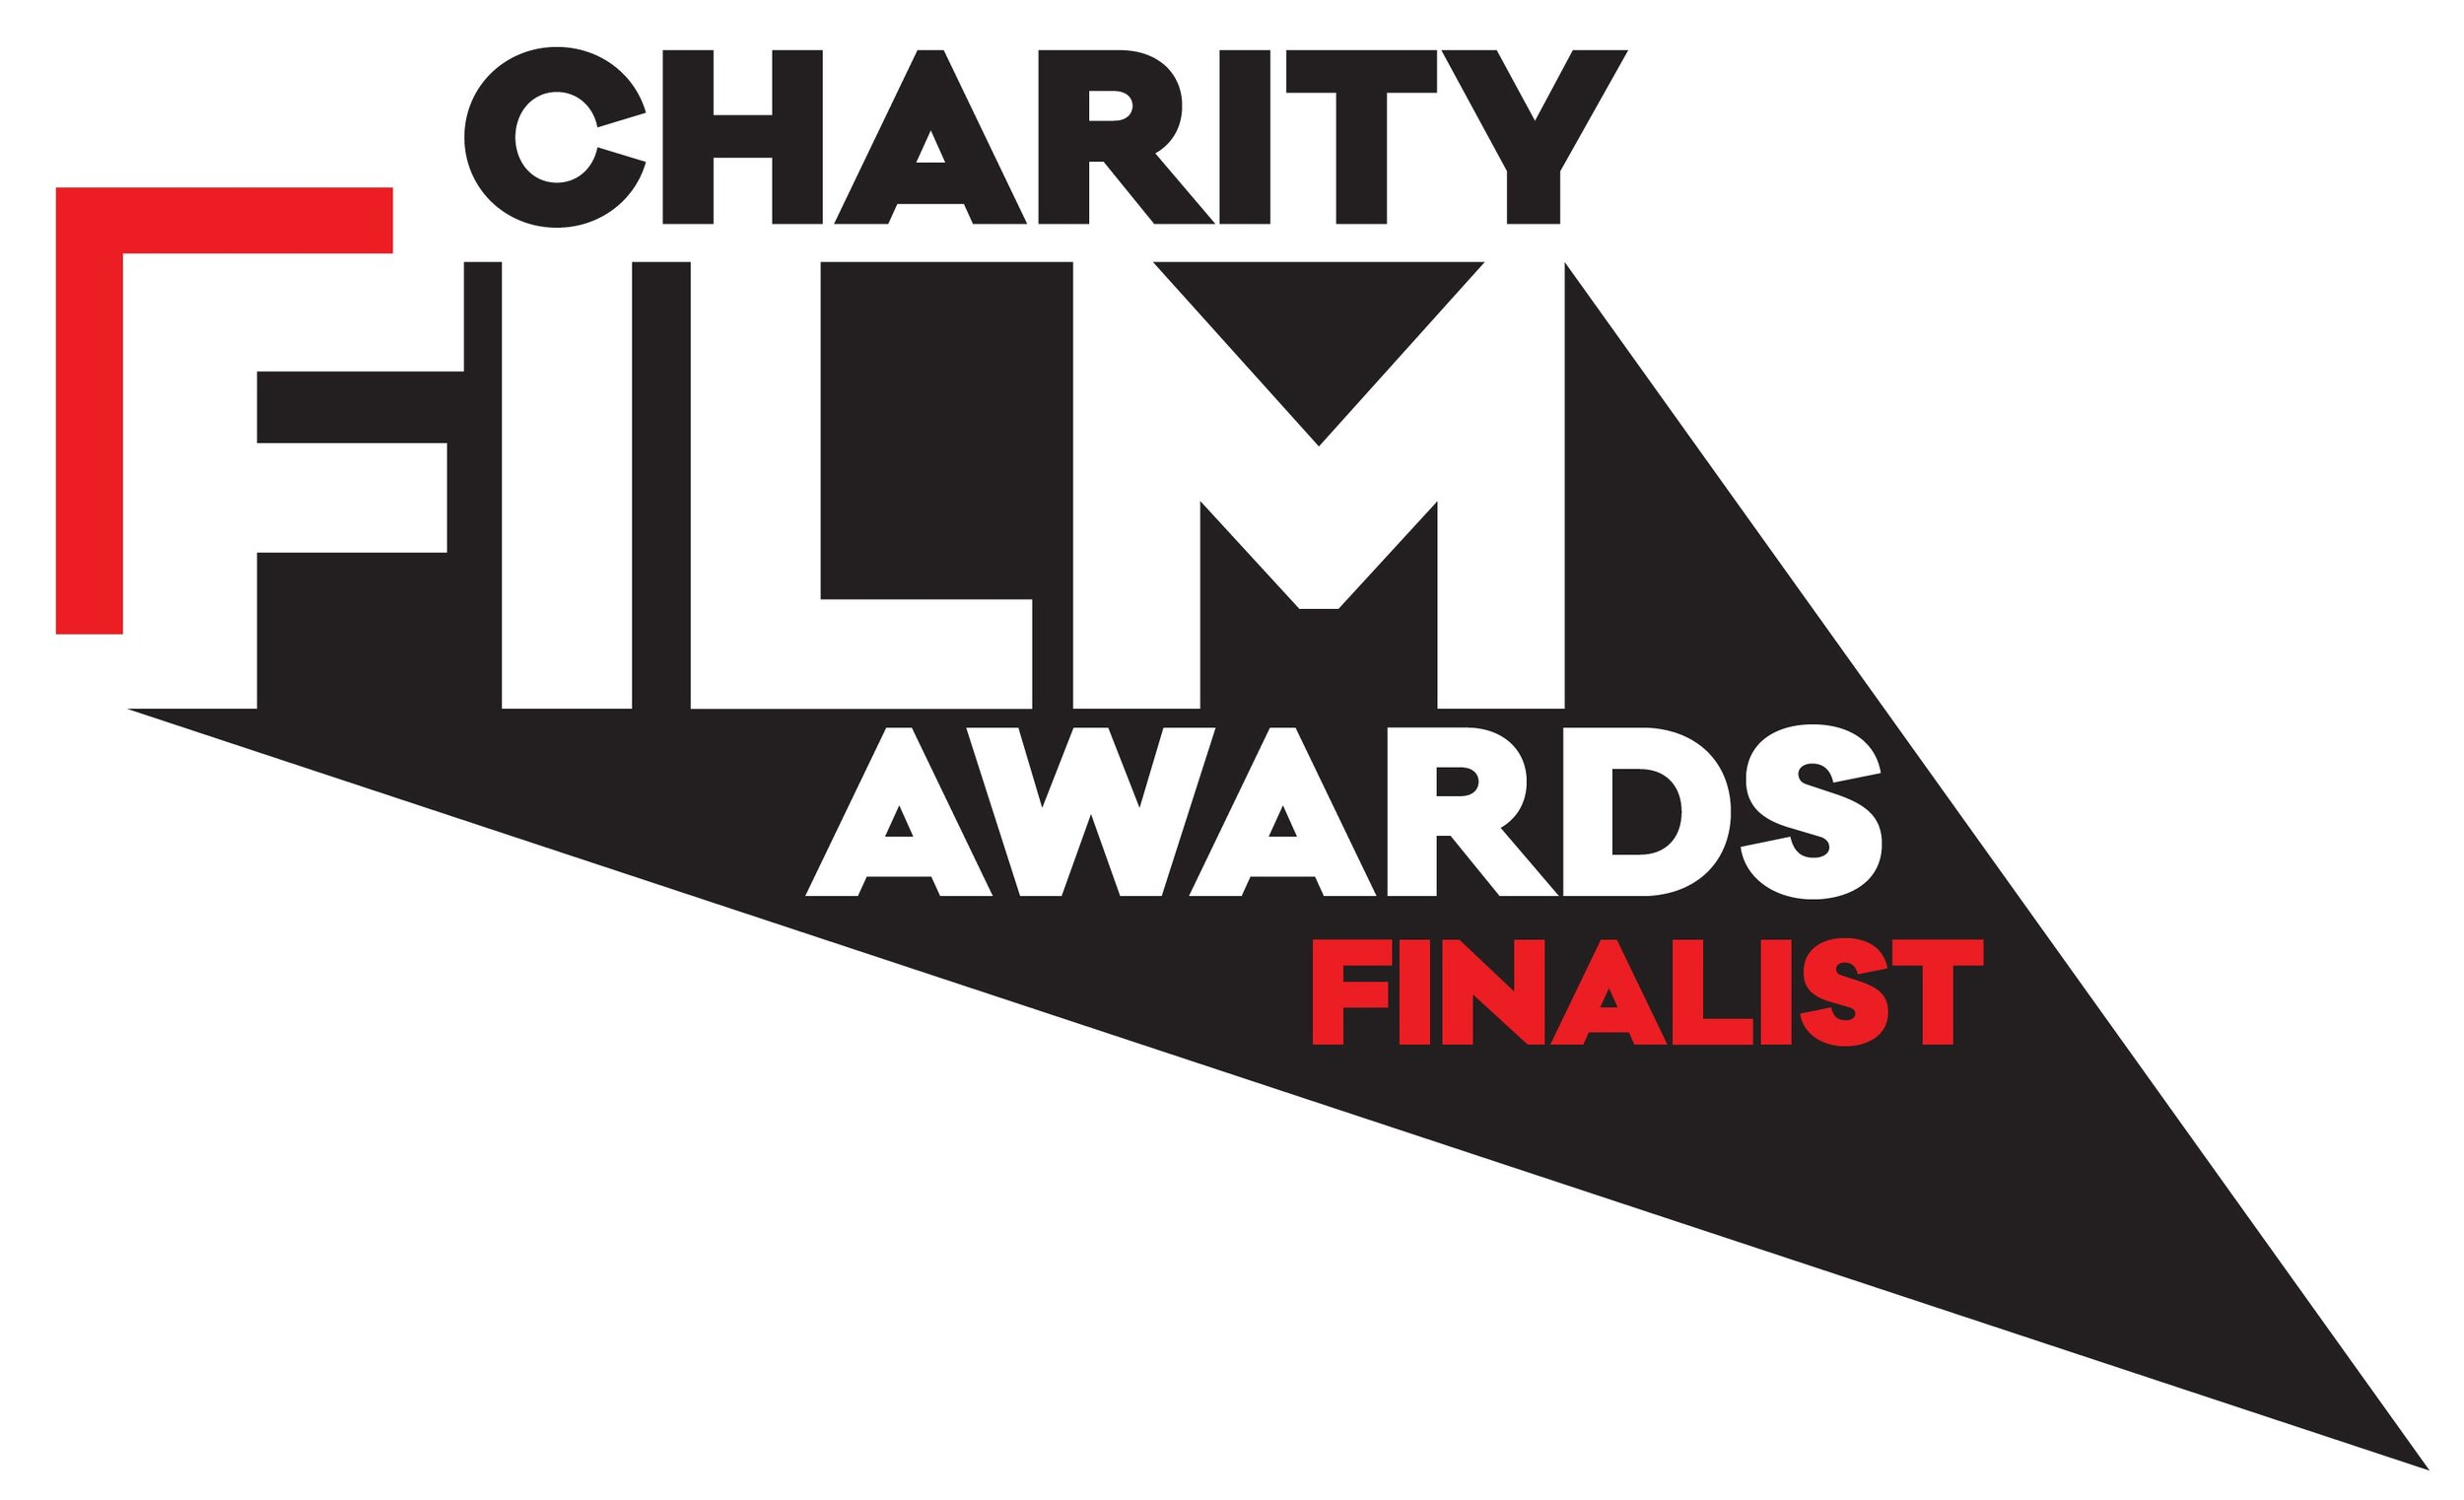 Charity Film Awards Finalist 2018